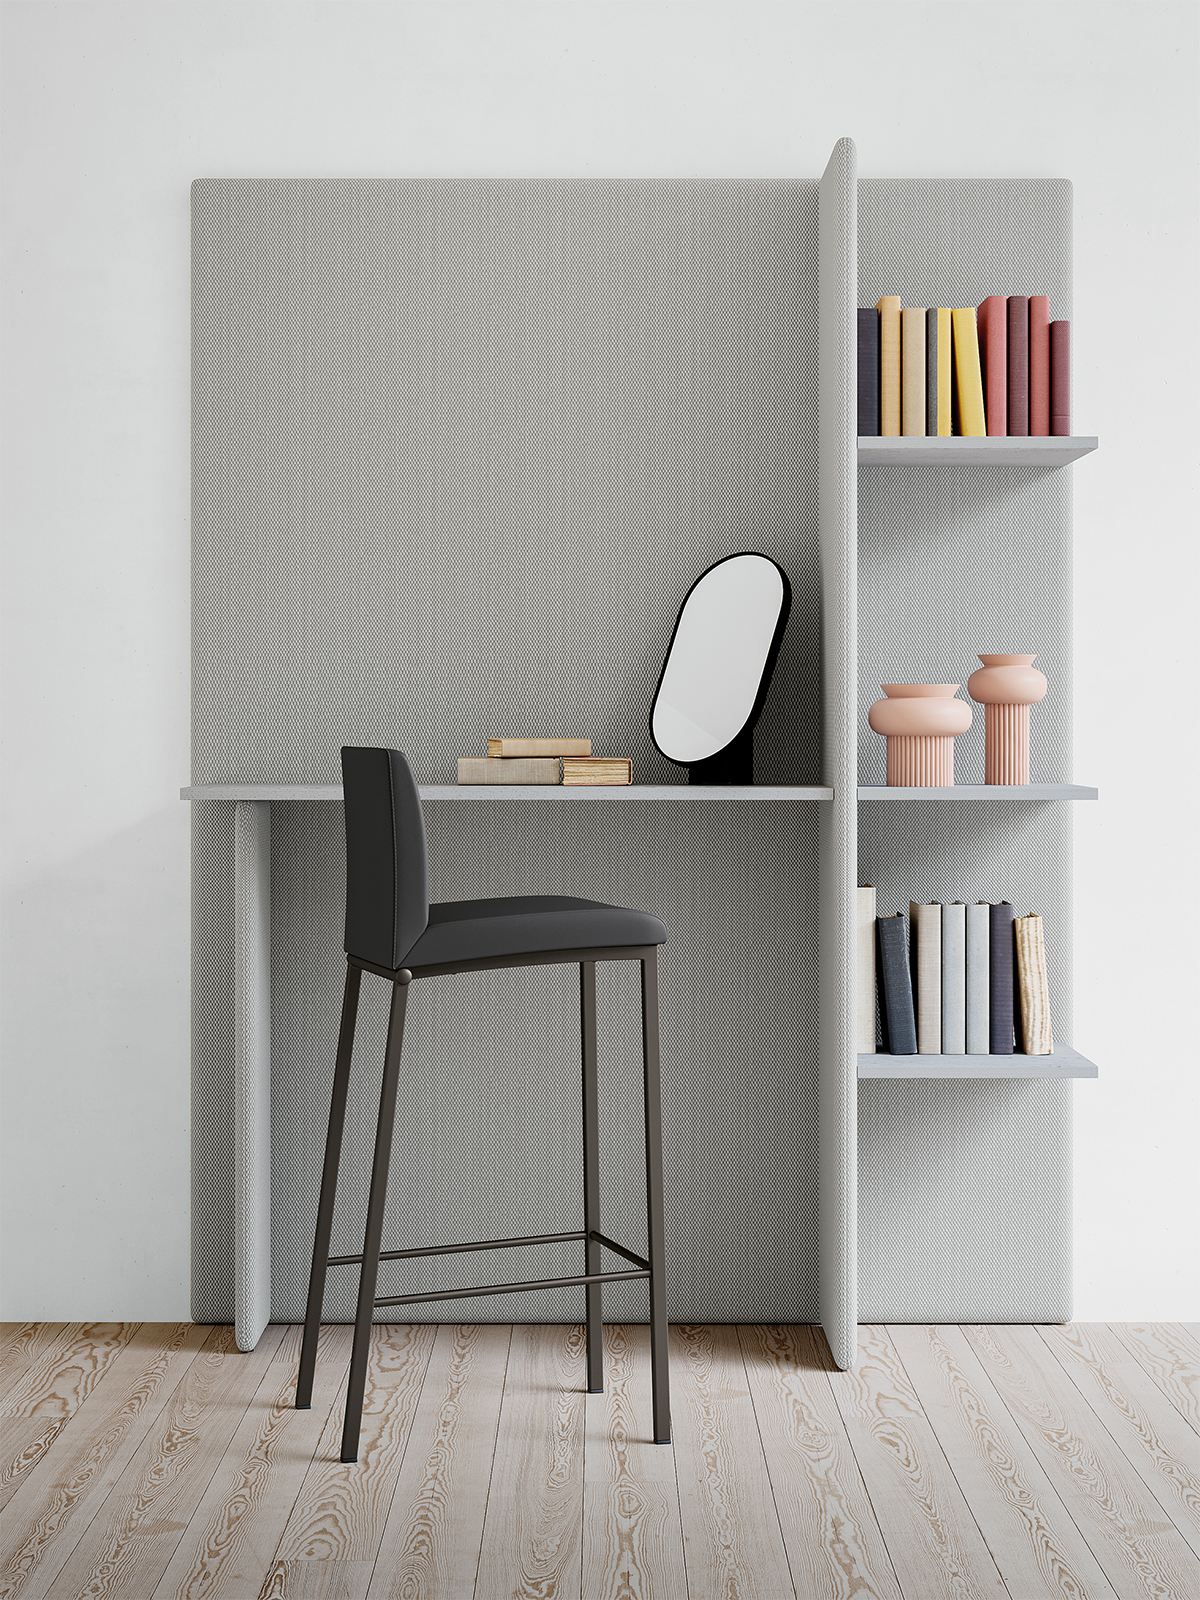 Personalisation, stylishness and functionality: Arredo3 presents its new catalogue of tables and chairs - 3